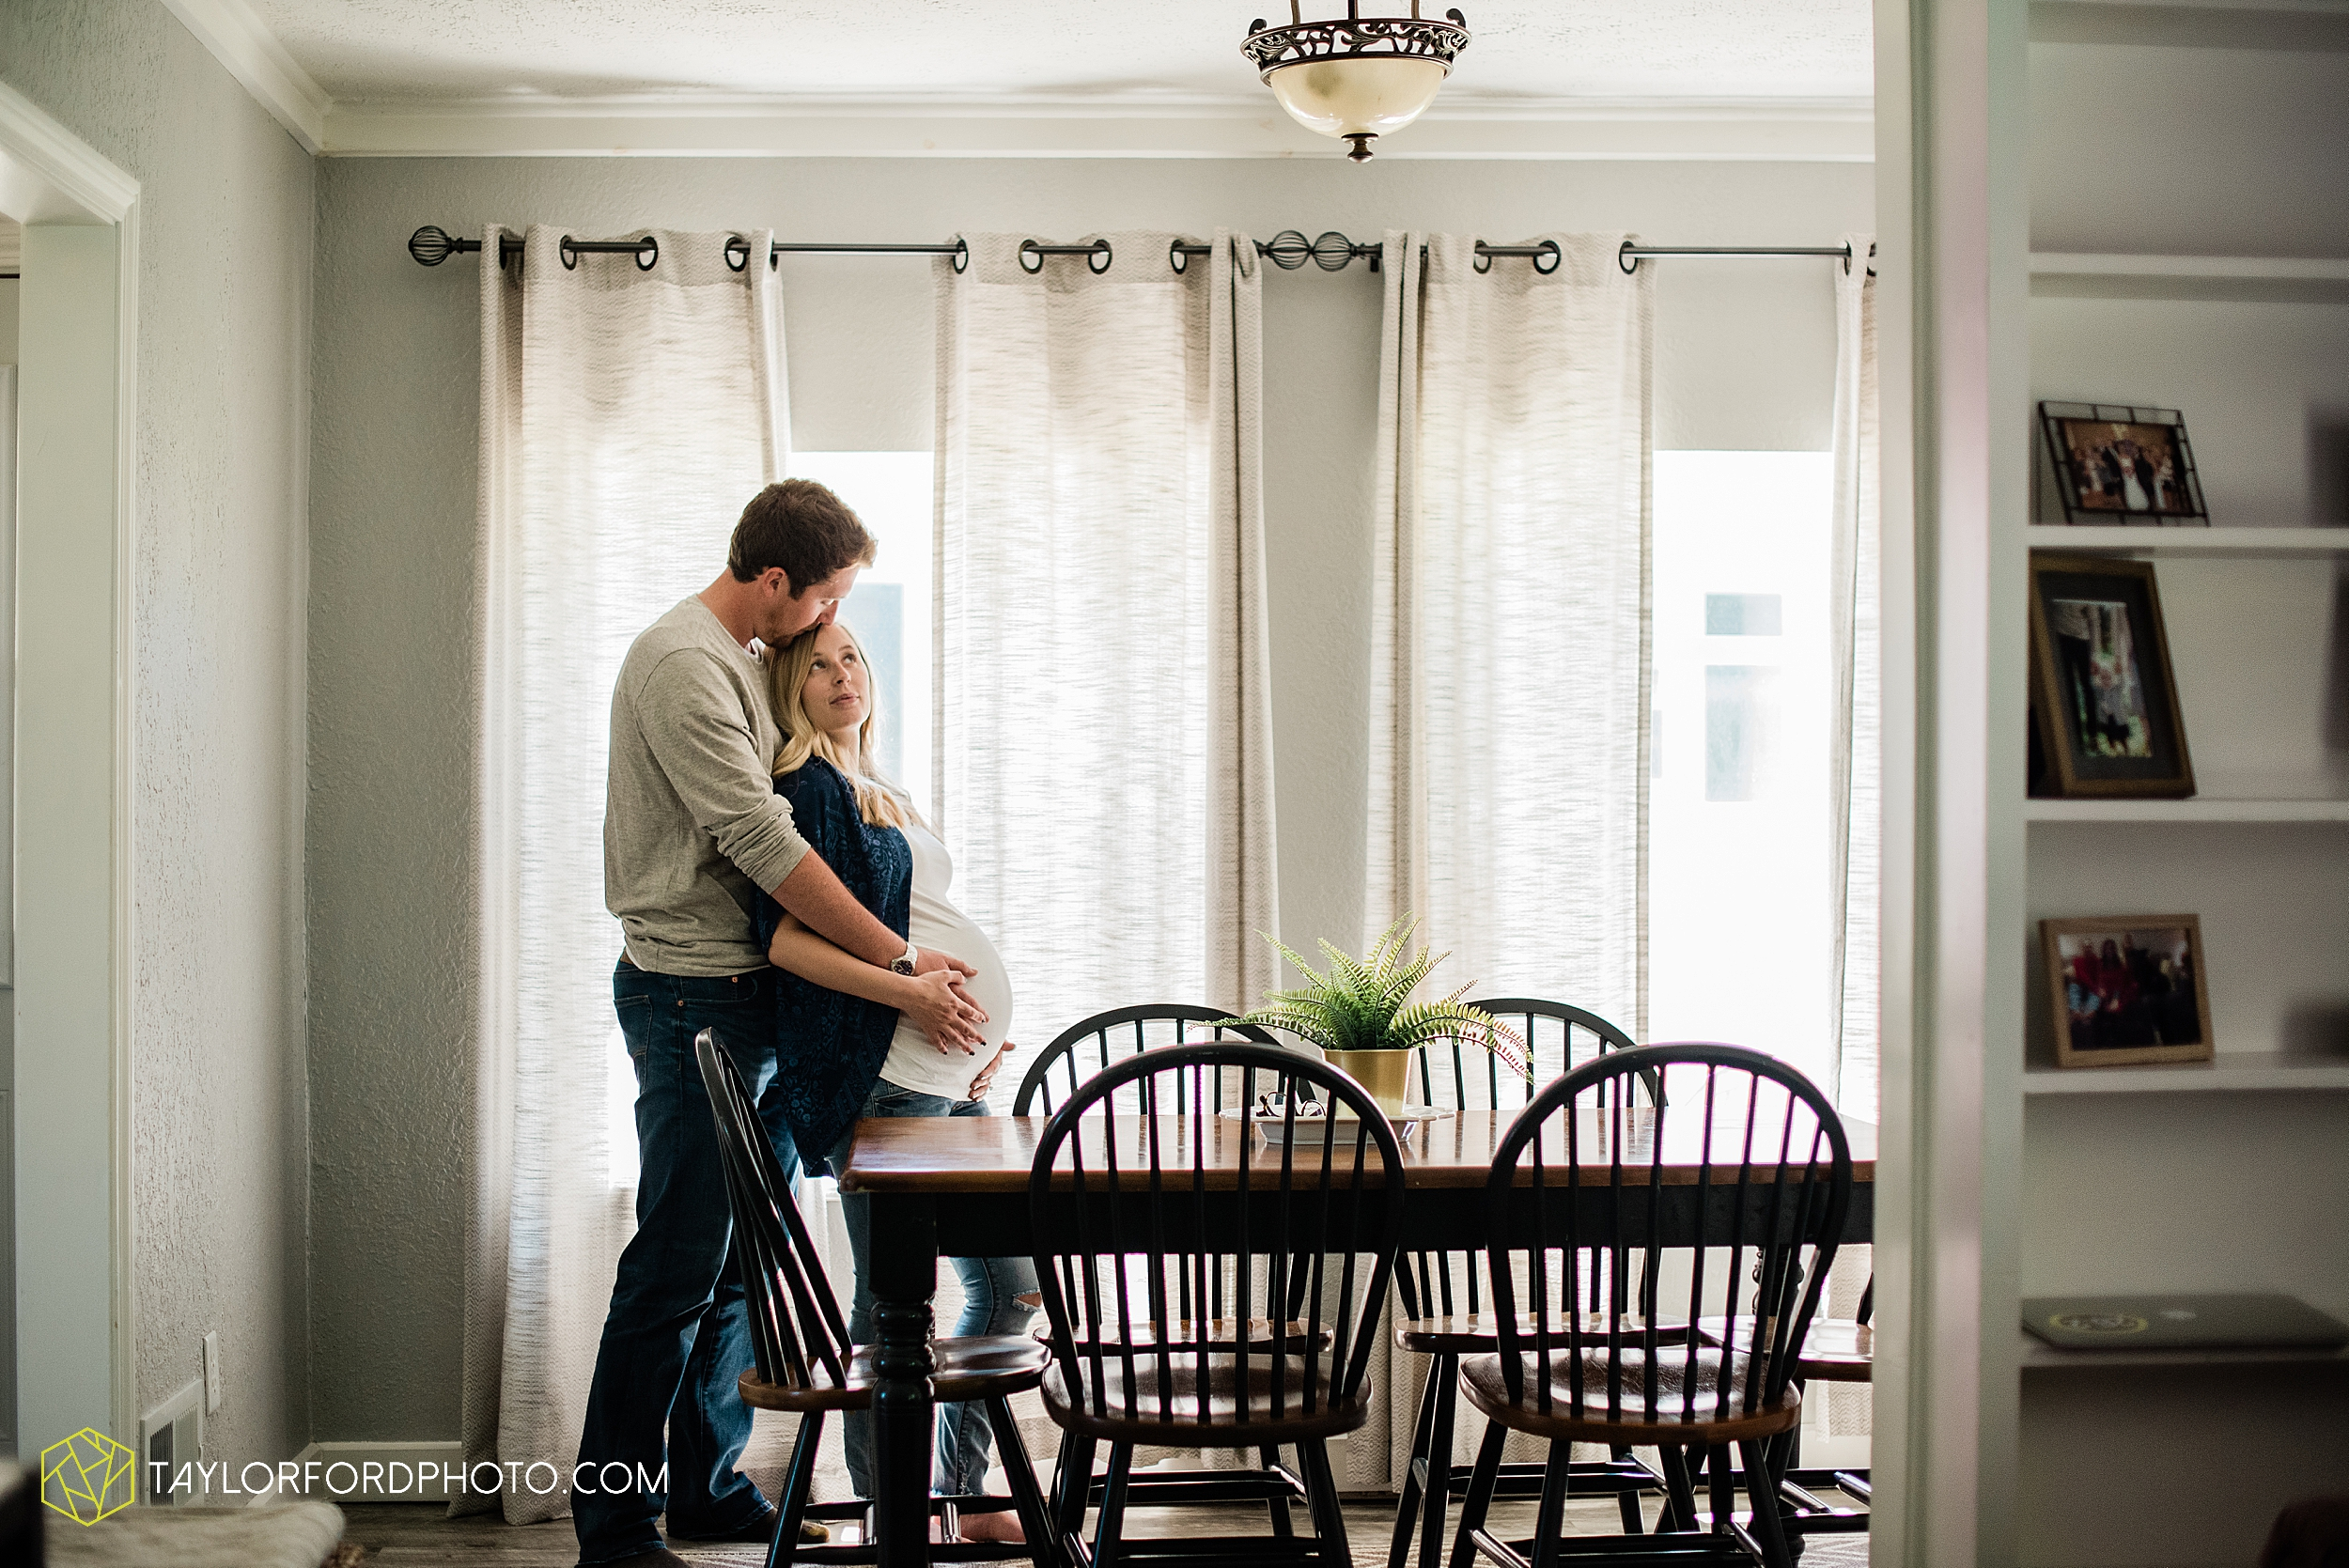 maumee-toledo-ohio-downtown-at-home-maternity-newborn-photographer-photography-taylor-ford-hirschy-photographer_3006.jpg